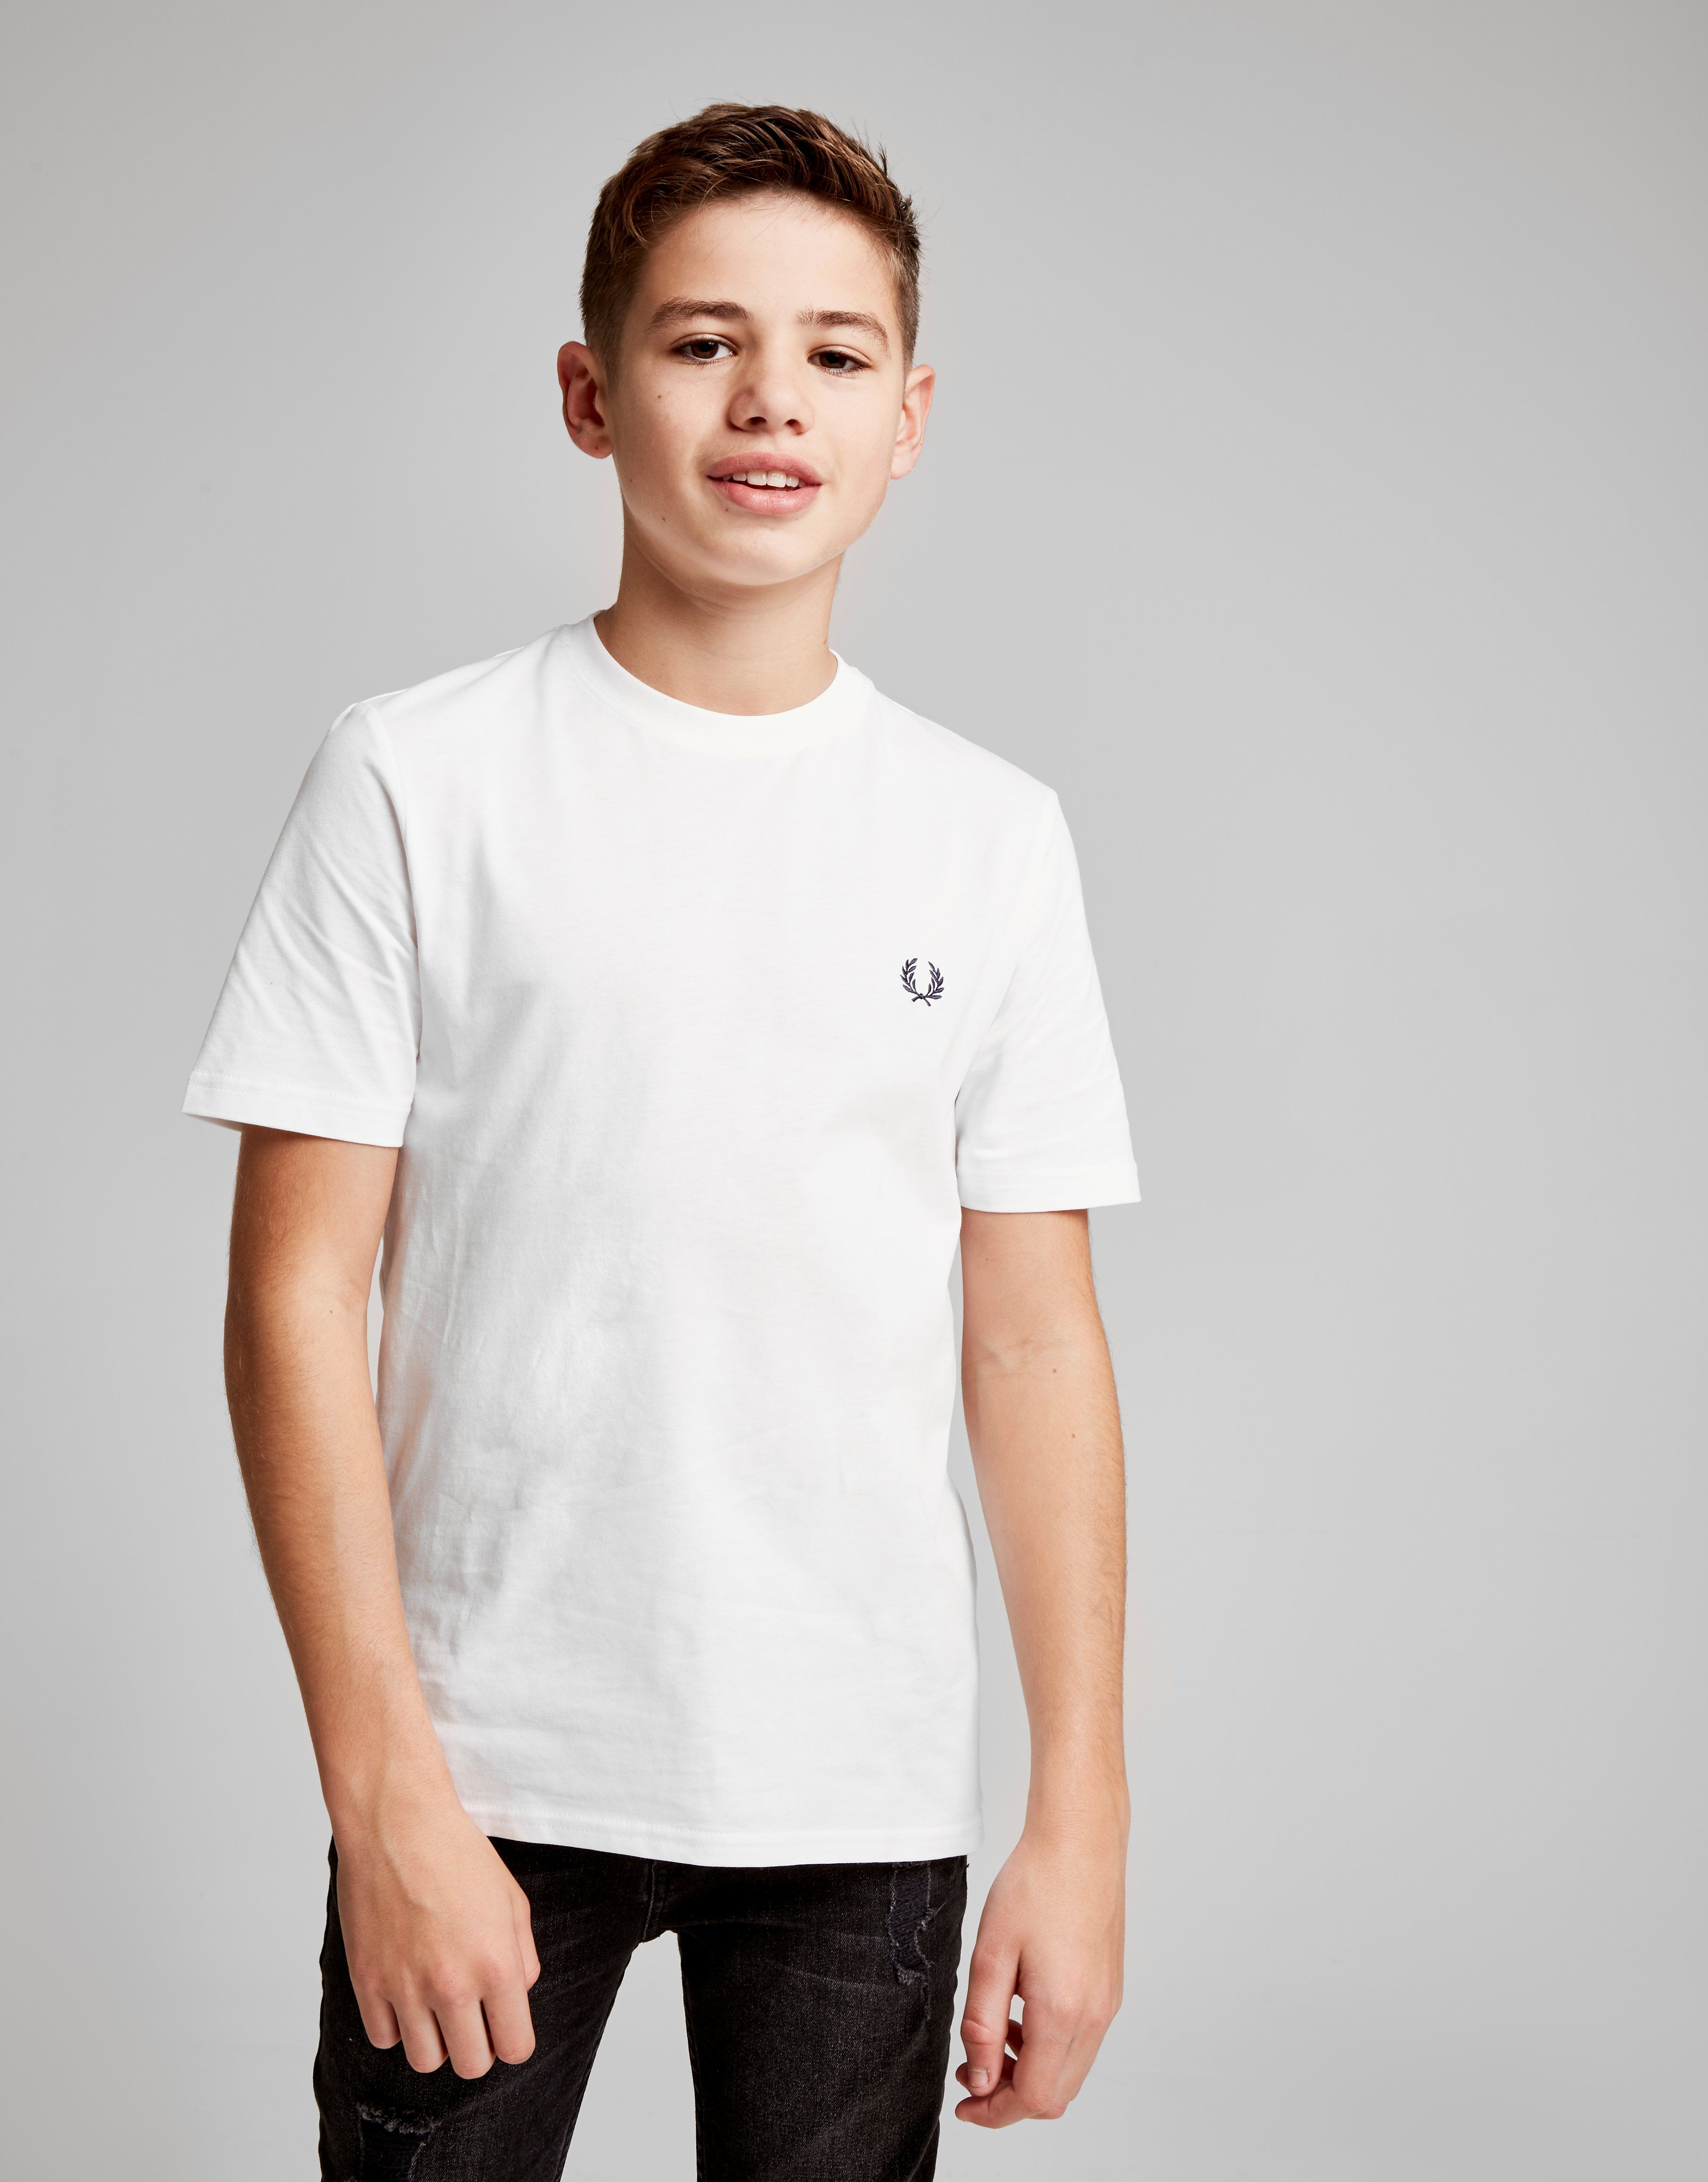 Fred perry laurel t shirt junior jd sports for T shirts for 15 year olds